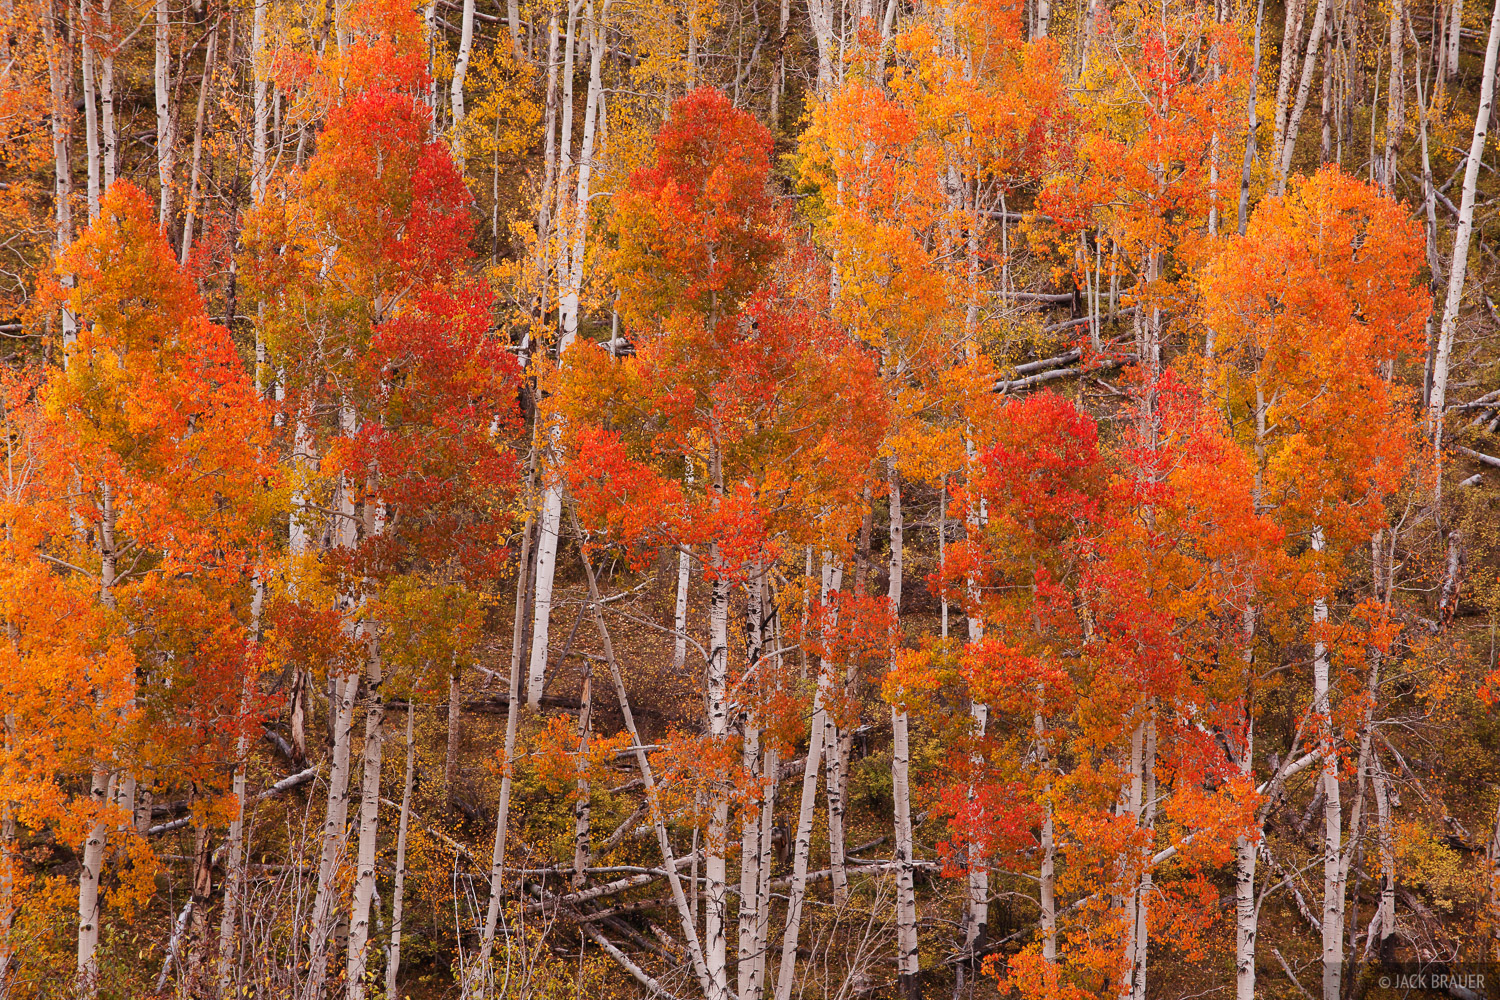 Dallas Divide, Sneffels Range, San Juan Mountains, Colorado, autumn, aspens, photo